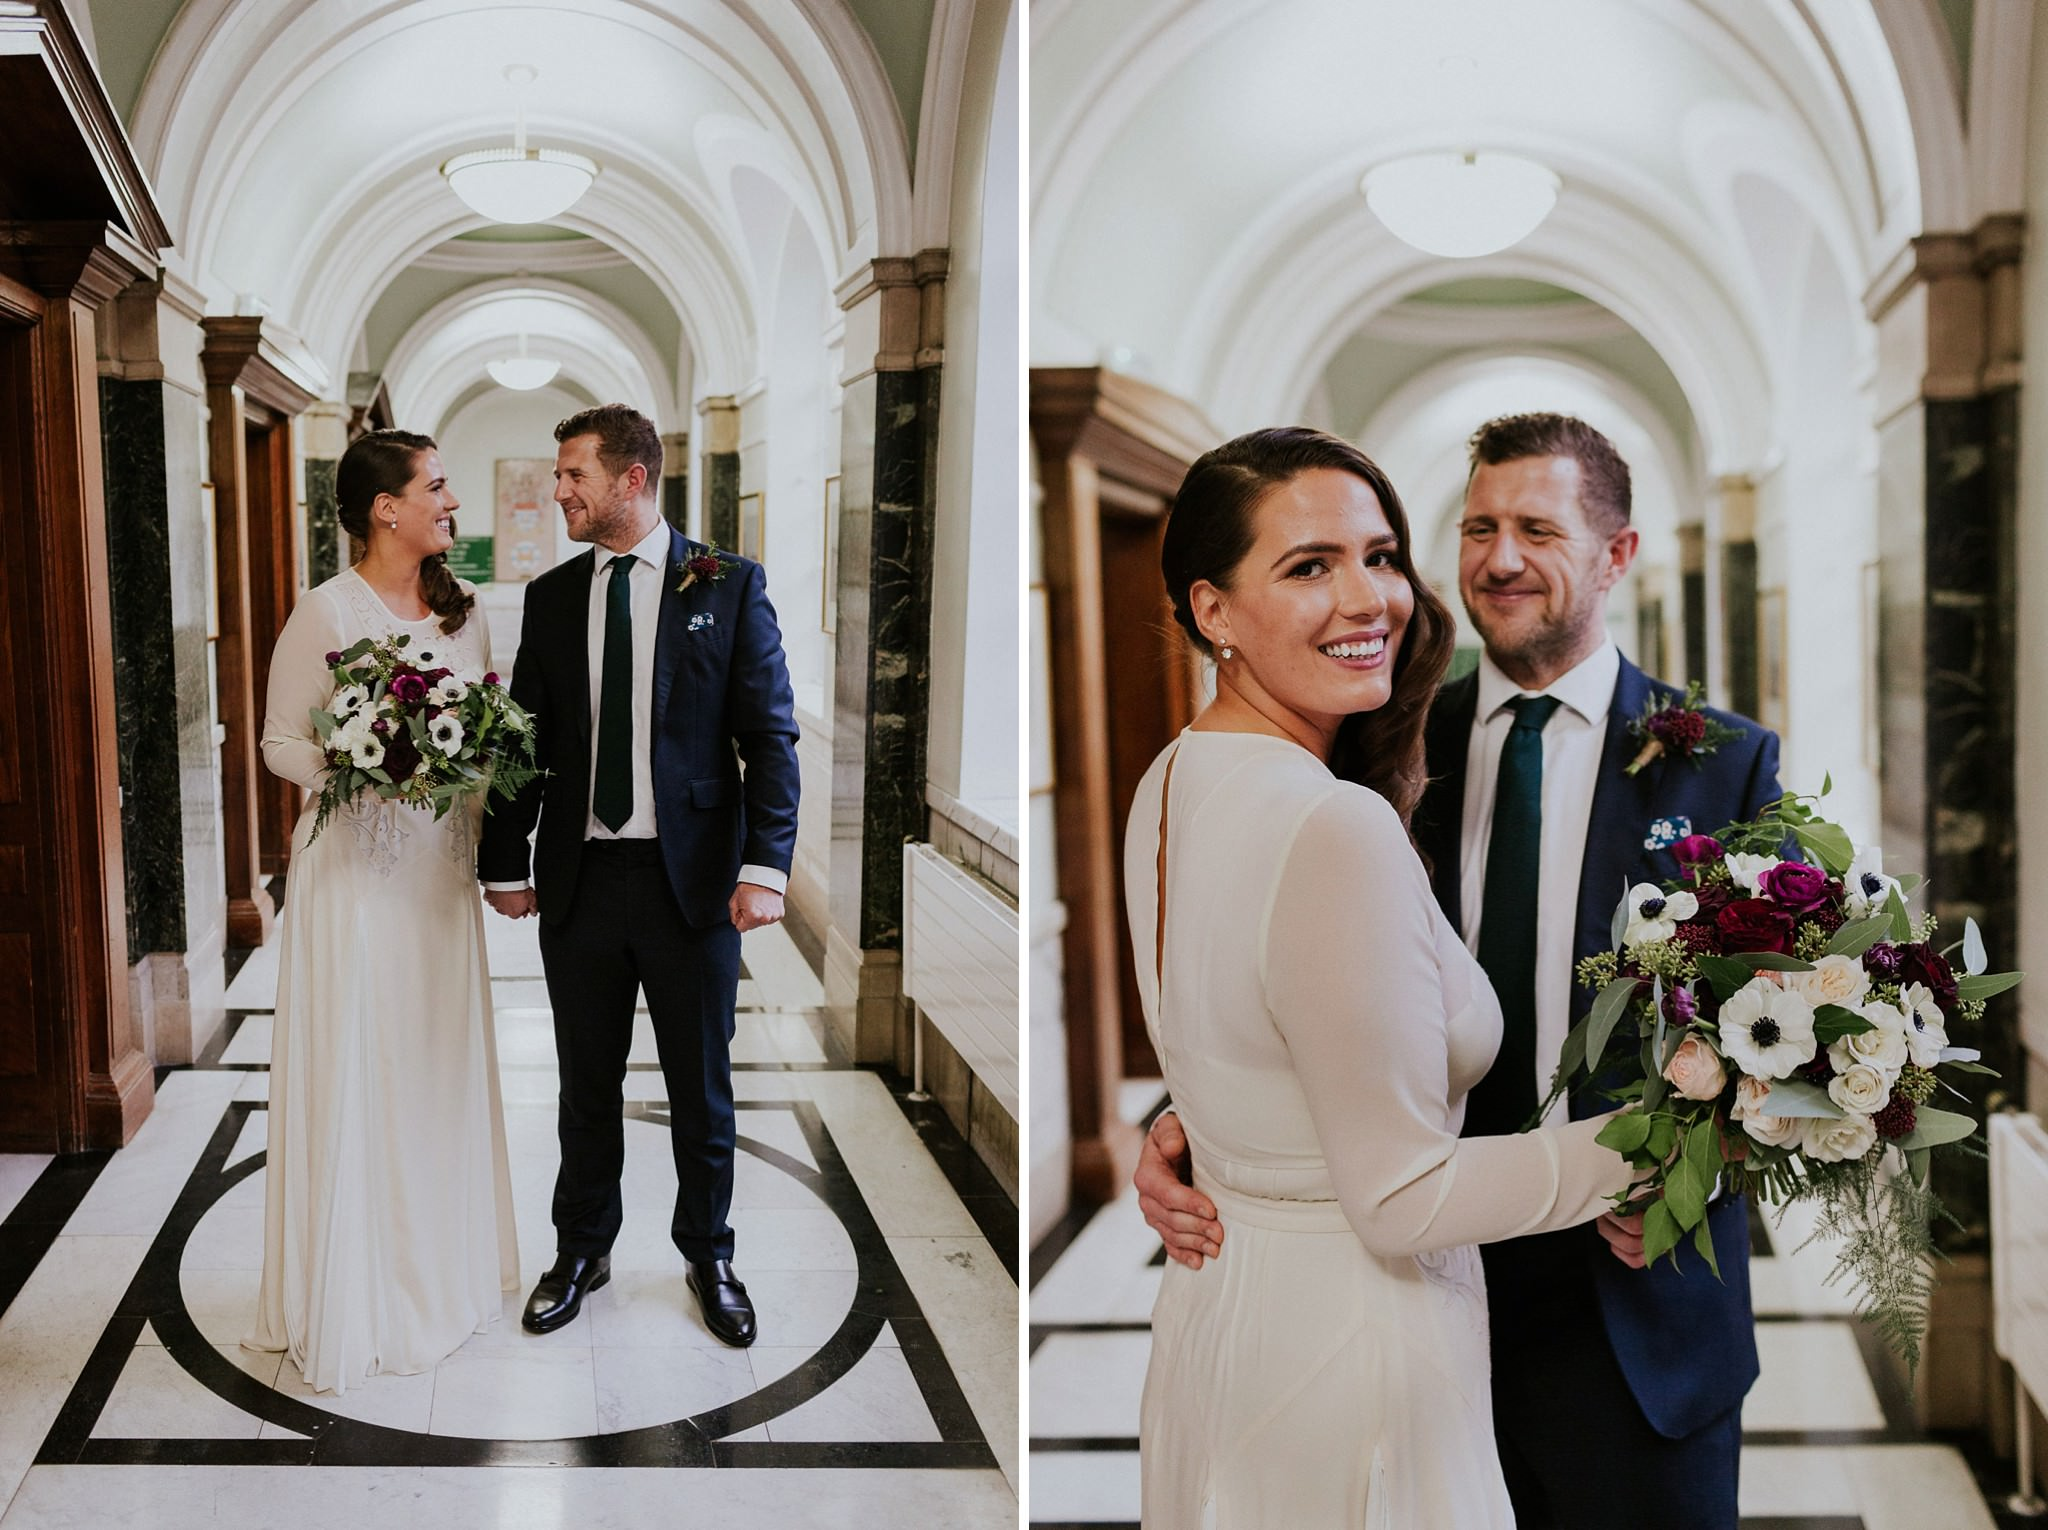 Bride and groom pose for portraits at Islington Town Hall